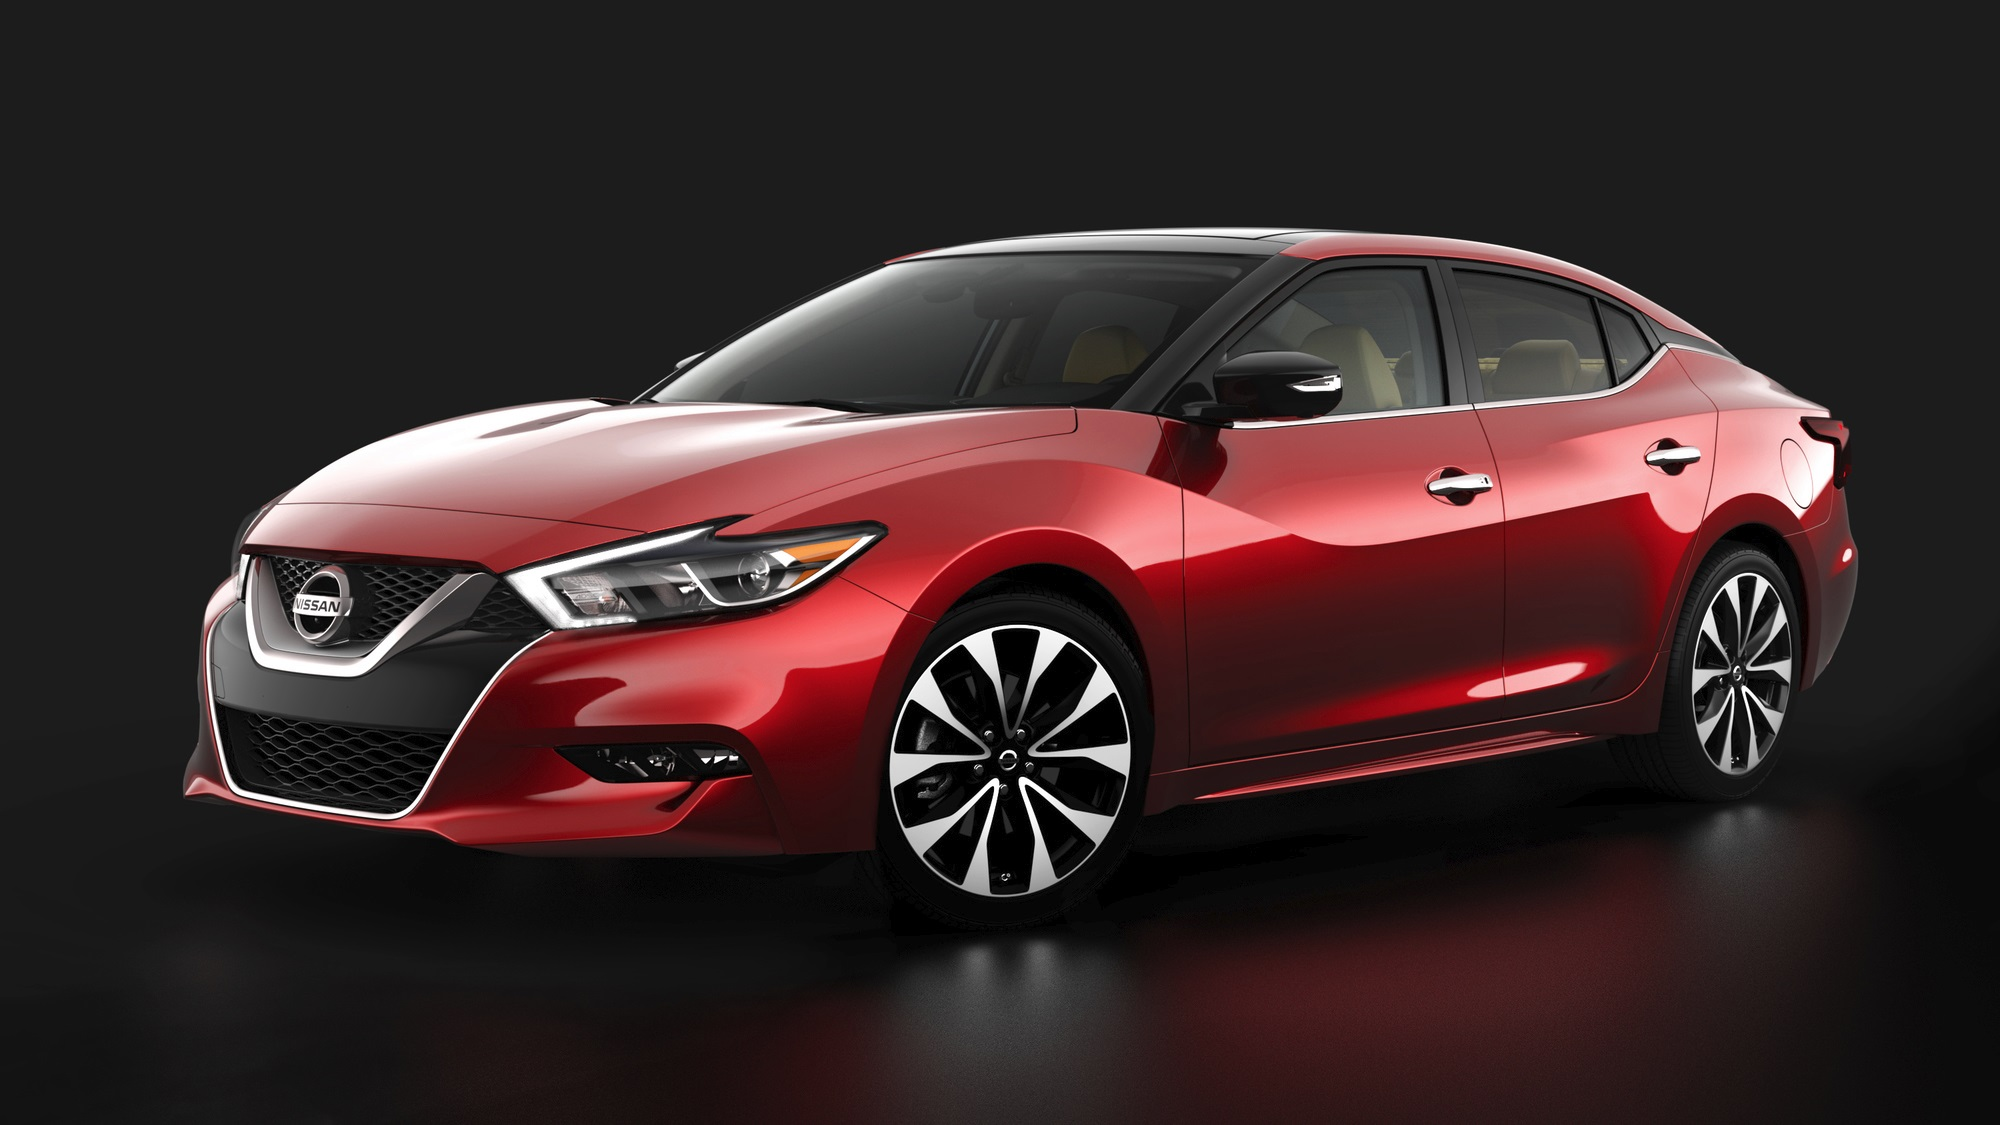 Nissan in Smyrna and Decherd to produce the NEW Maxima  | Nissan Maxima, Smyrna Nissan, Nissan, Smyrna news, Smyrna jobs, job growth